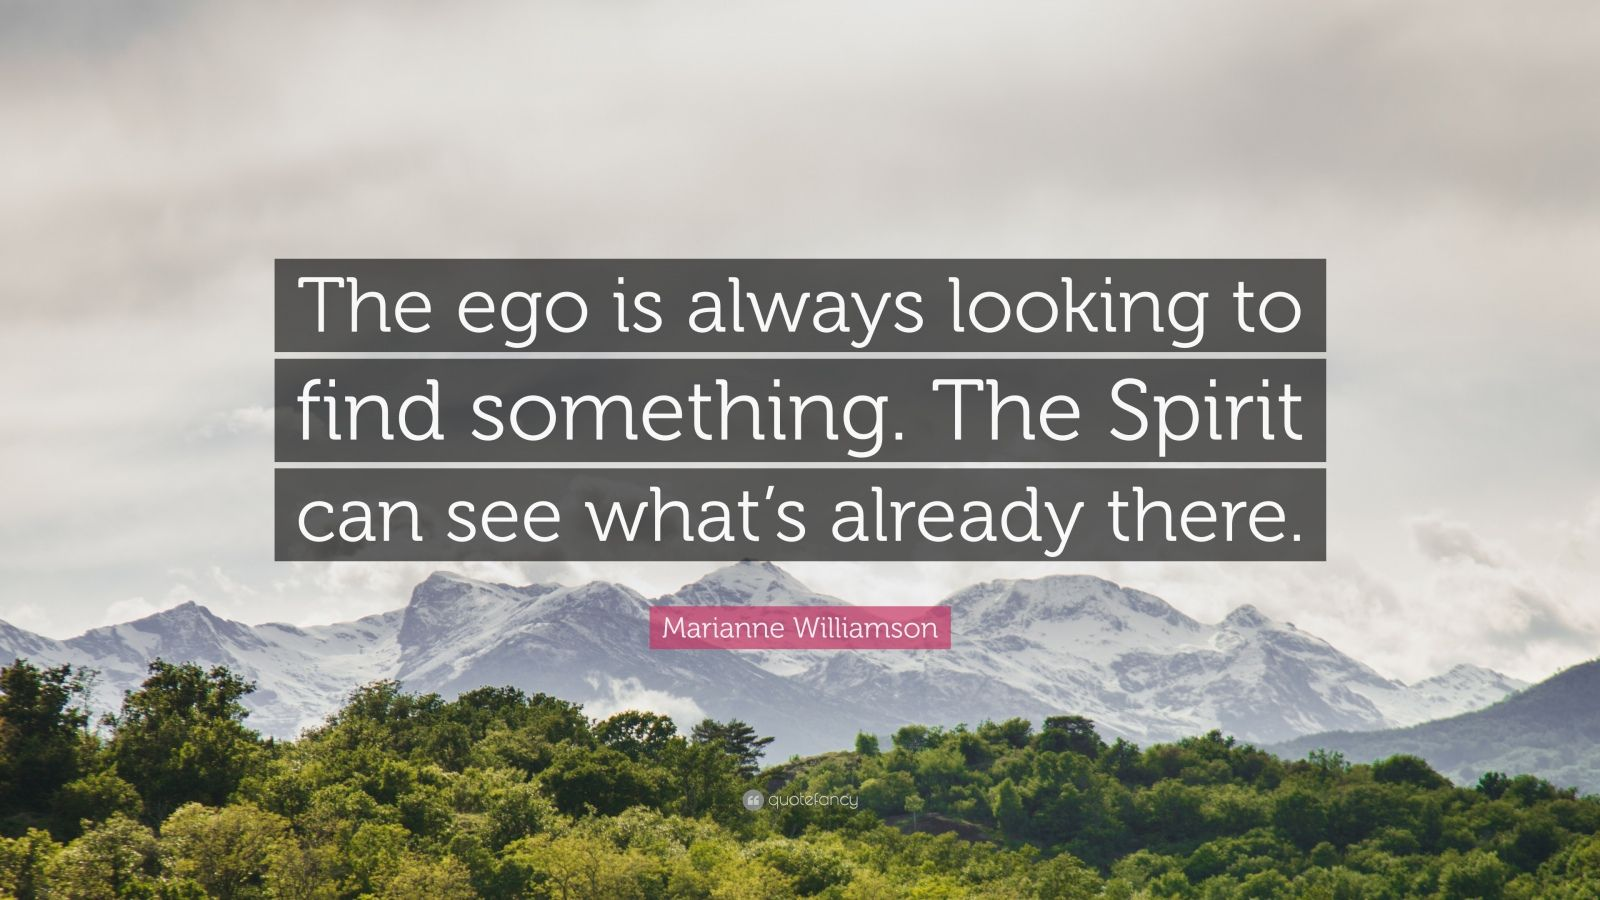 """Marianne Williamson Quote: """"The ego is always looking to find something. The Spirit can see what's already there."""""""